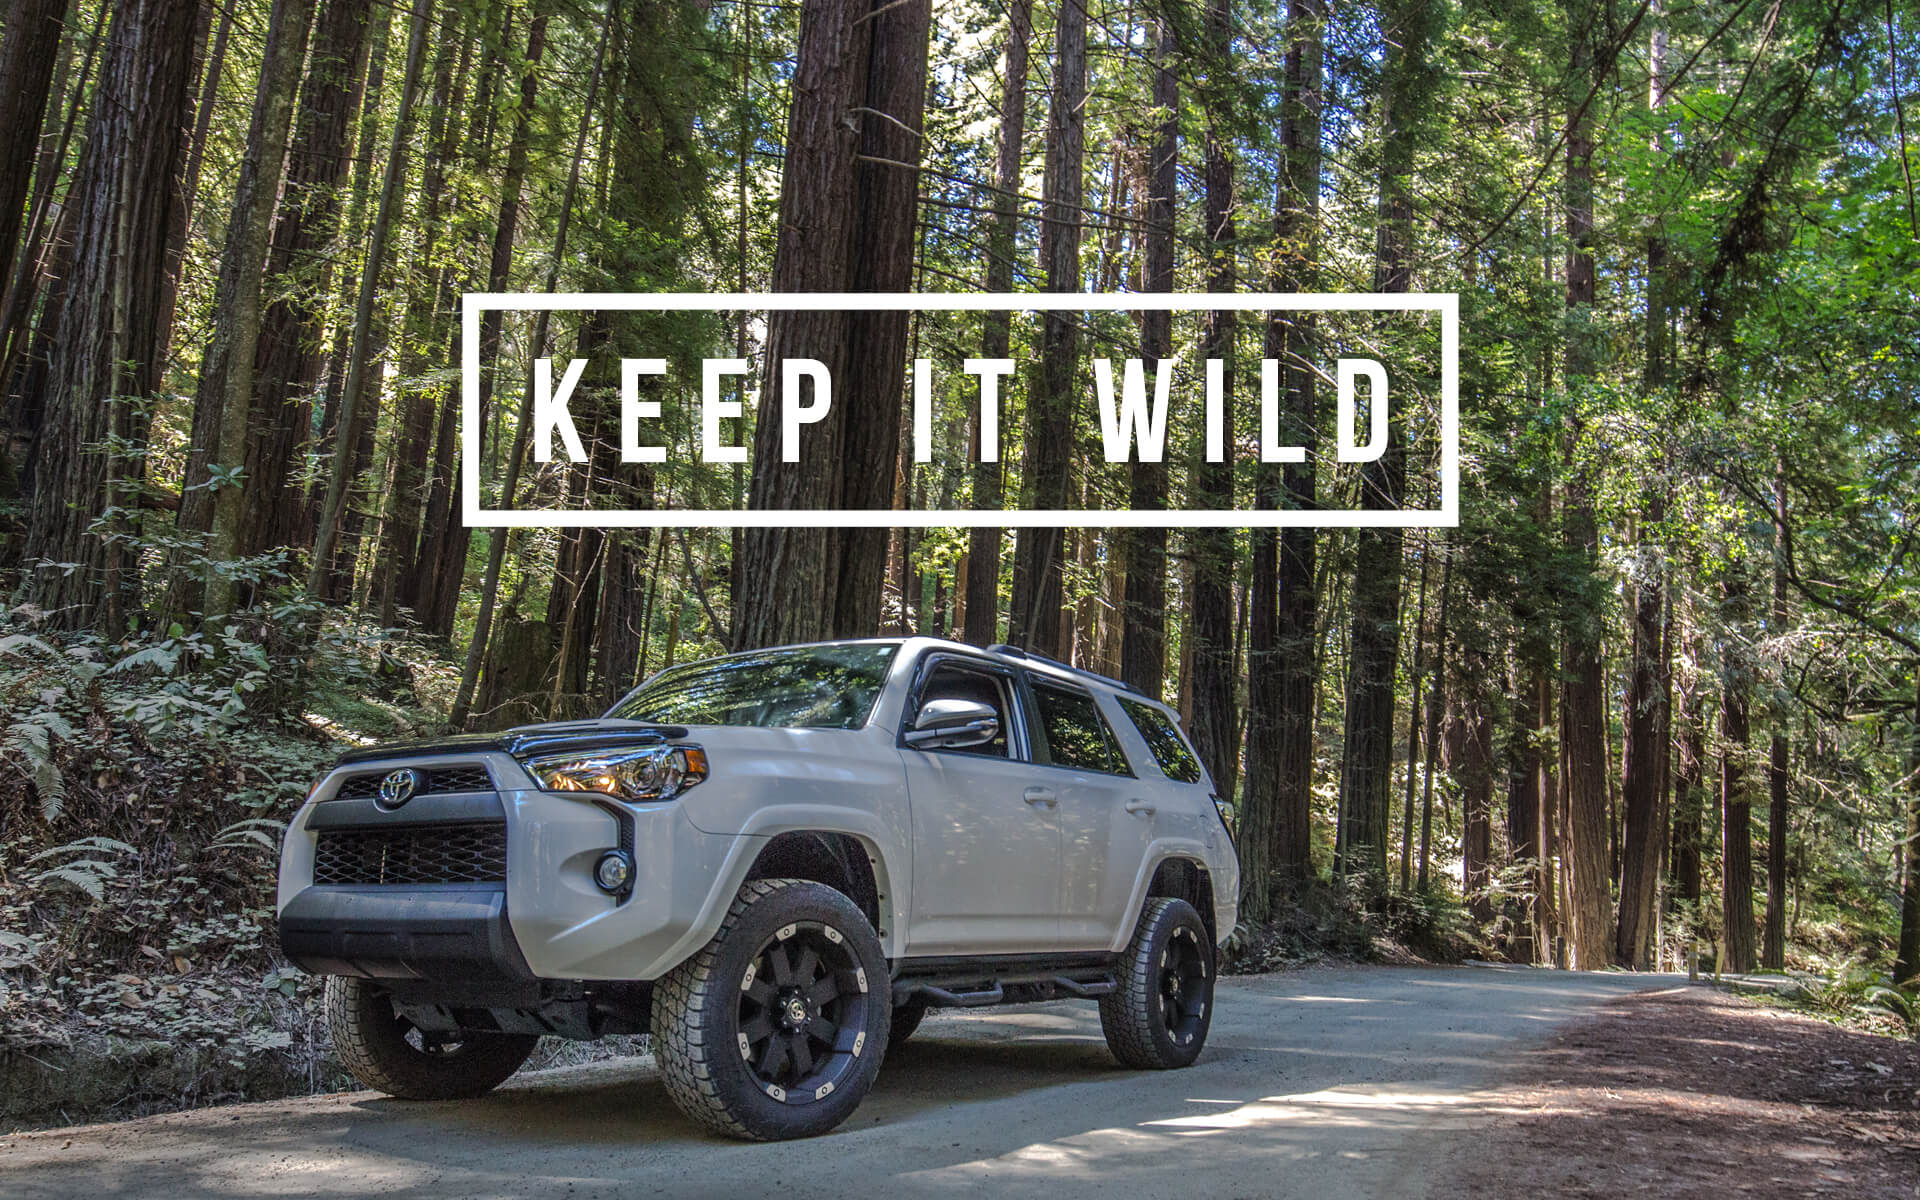 Toyota TRD Wallpapers and Backgrounds iPhone and Desktop 1920x1200